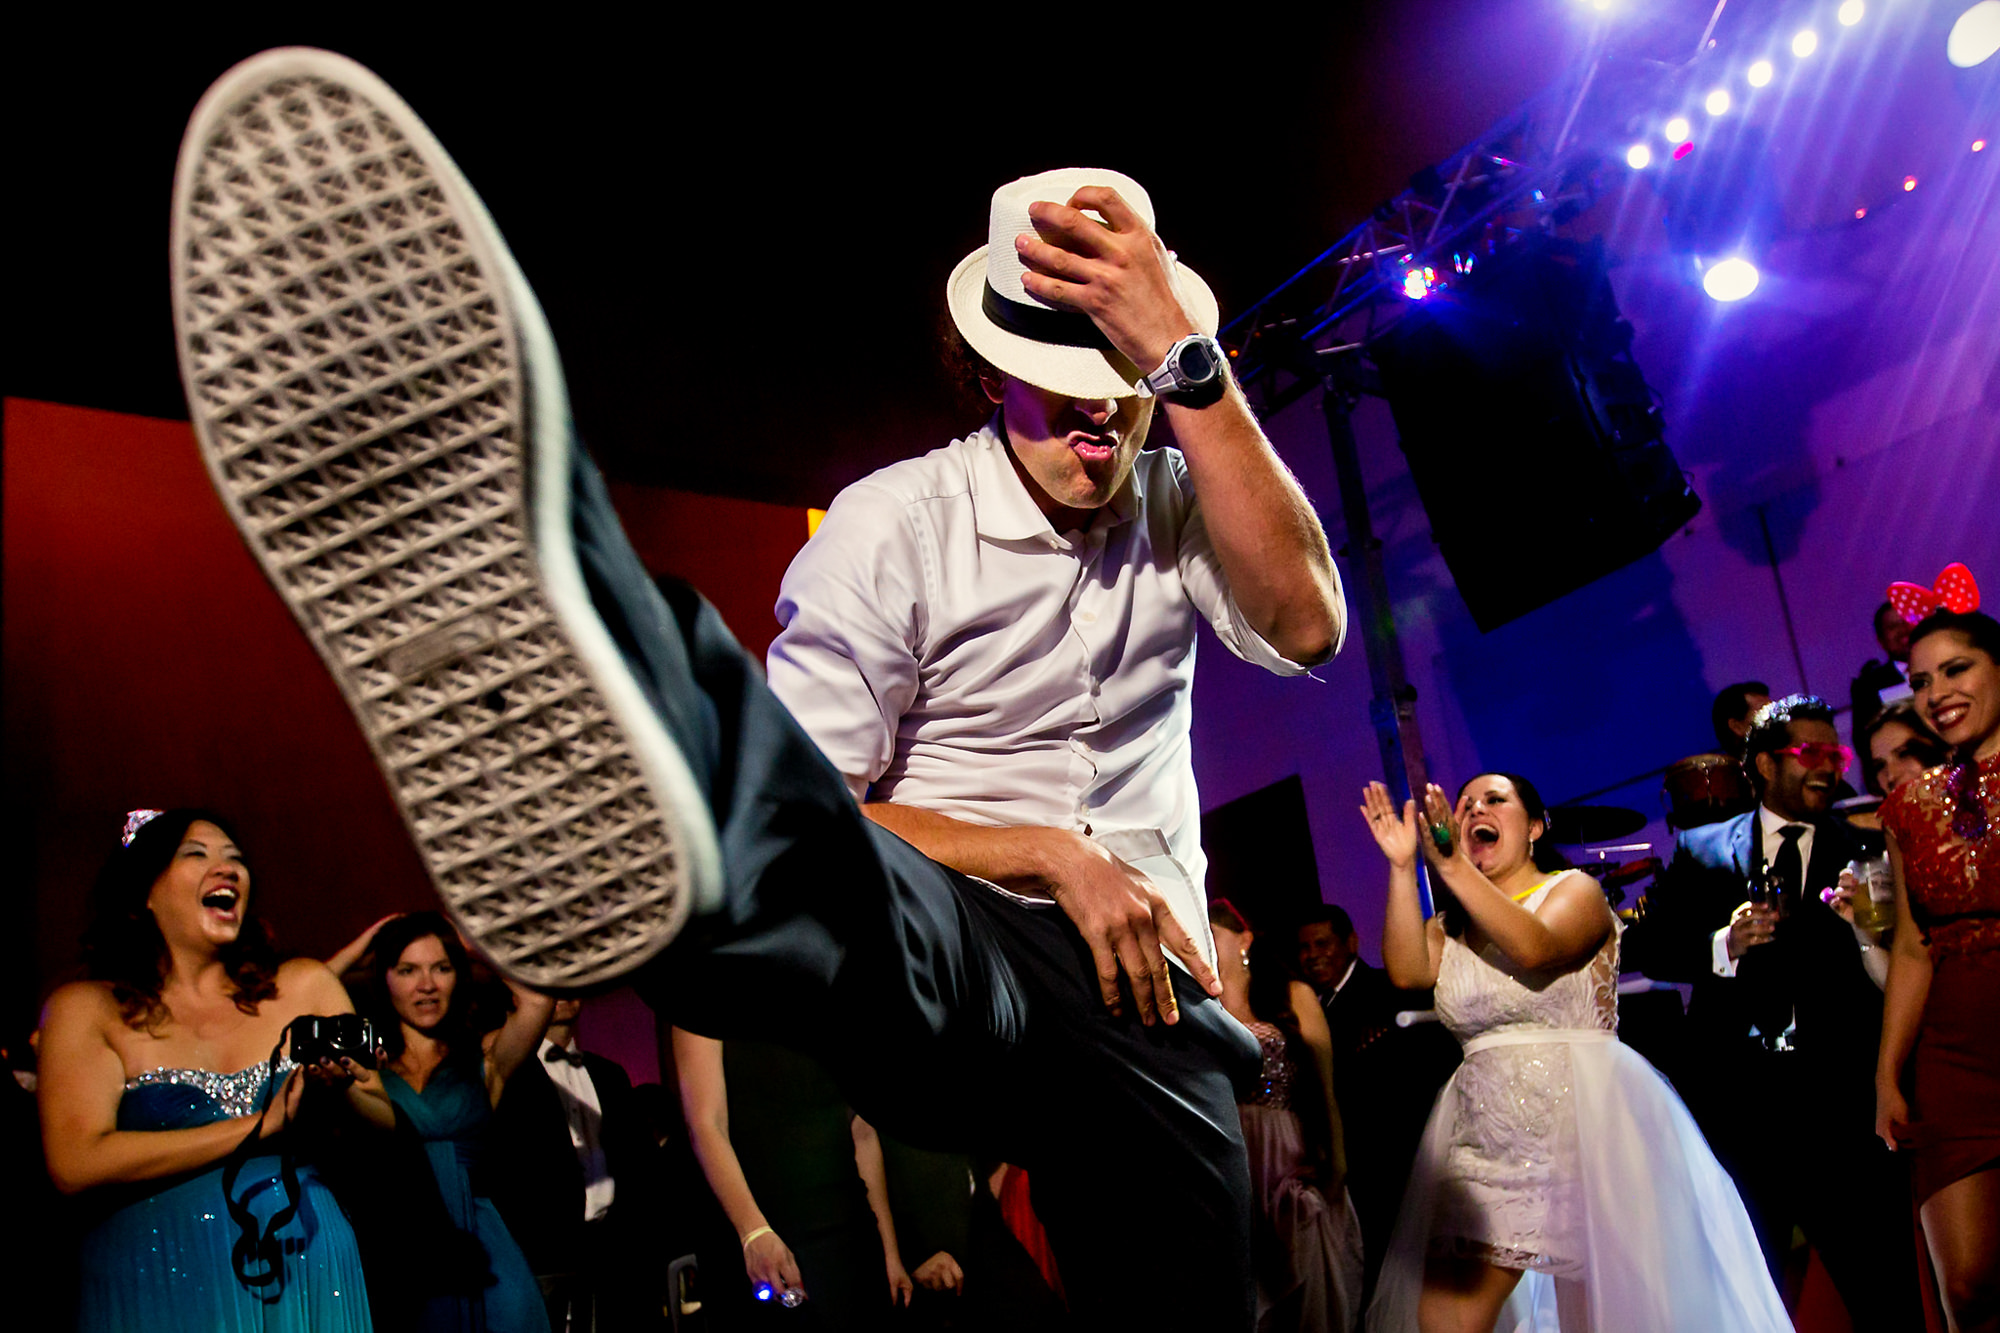 Party guest kicks it up on dance floor - photo by Two Mann Studios